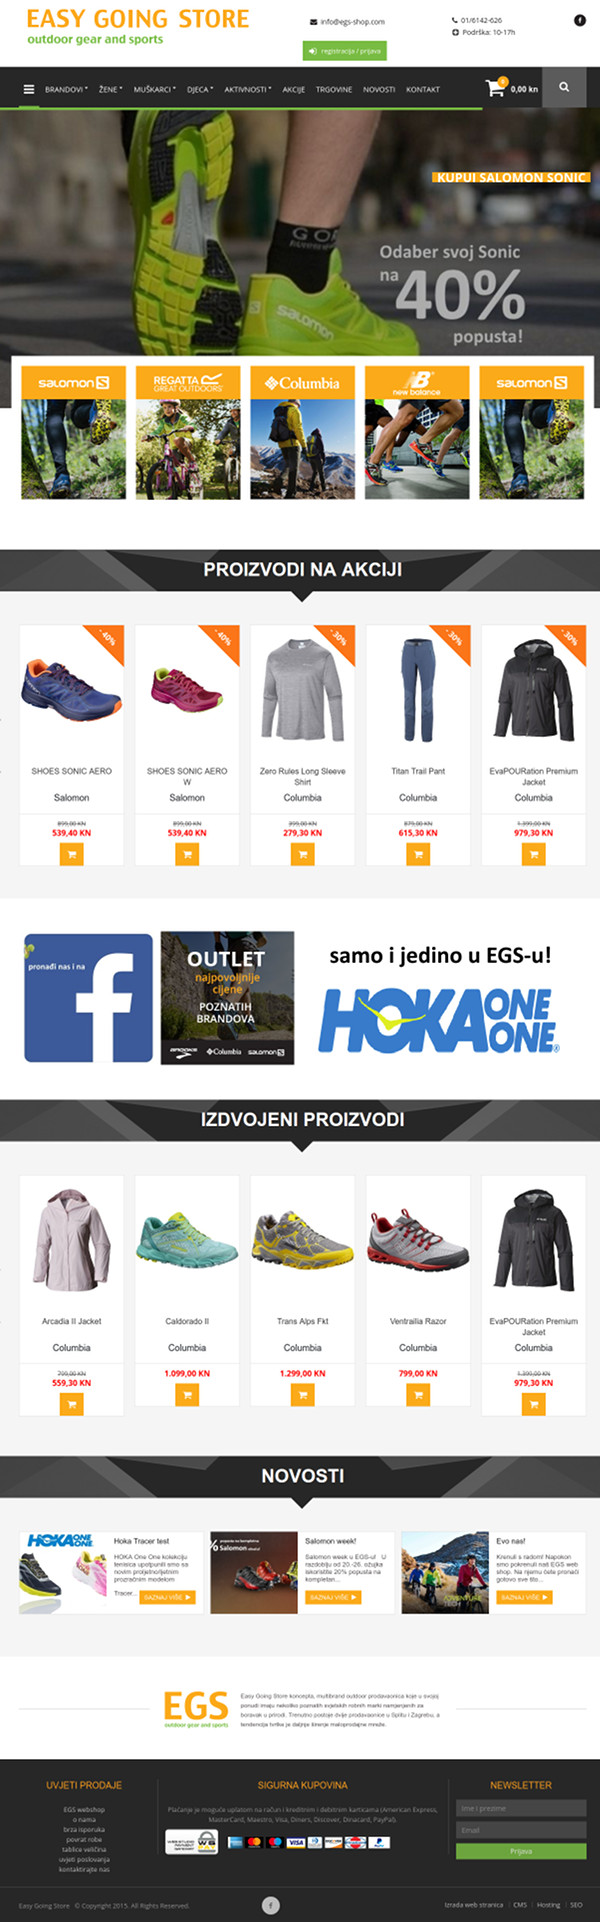 Easy Going Store webshop